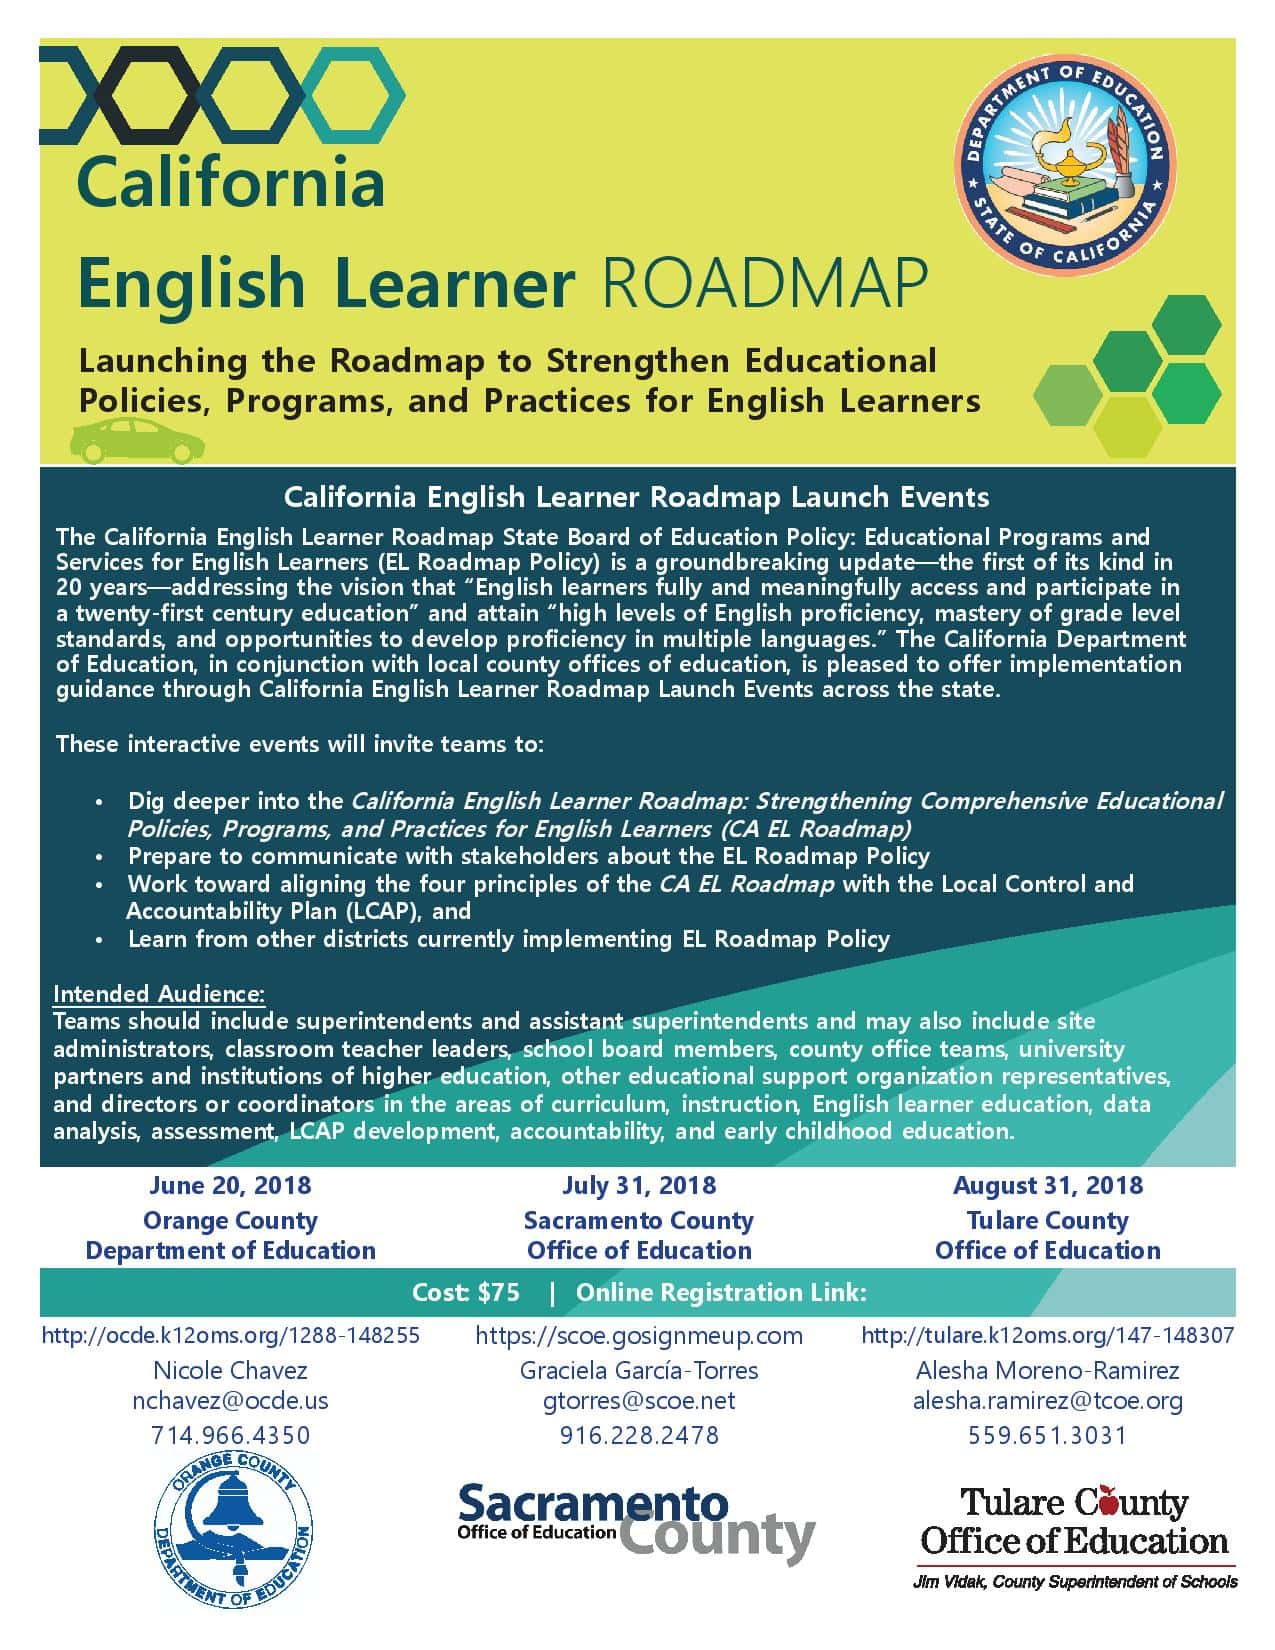 U S Department Of Education Launches New English Learner >> June 20 July 31 August 31 Ca English Learner Roadmap Workshops